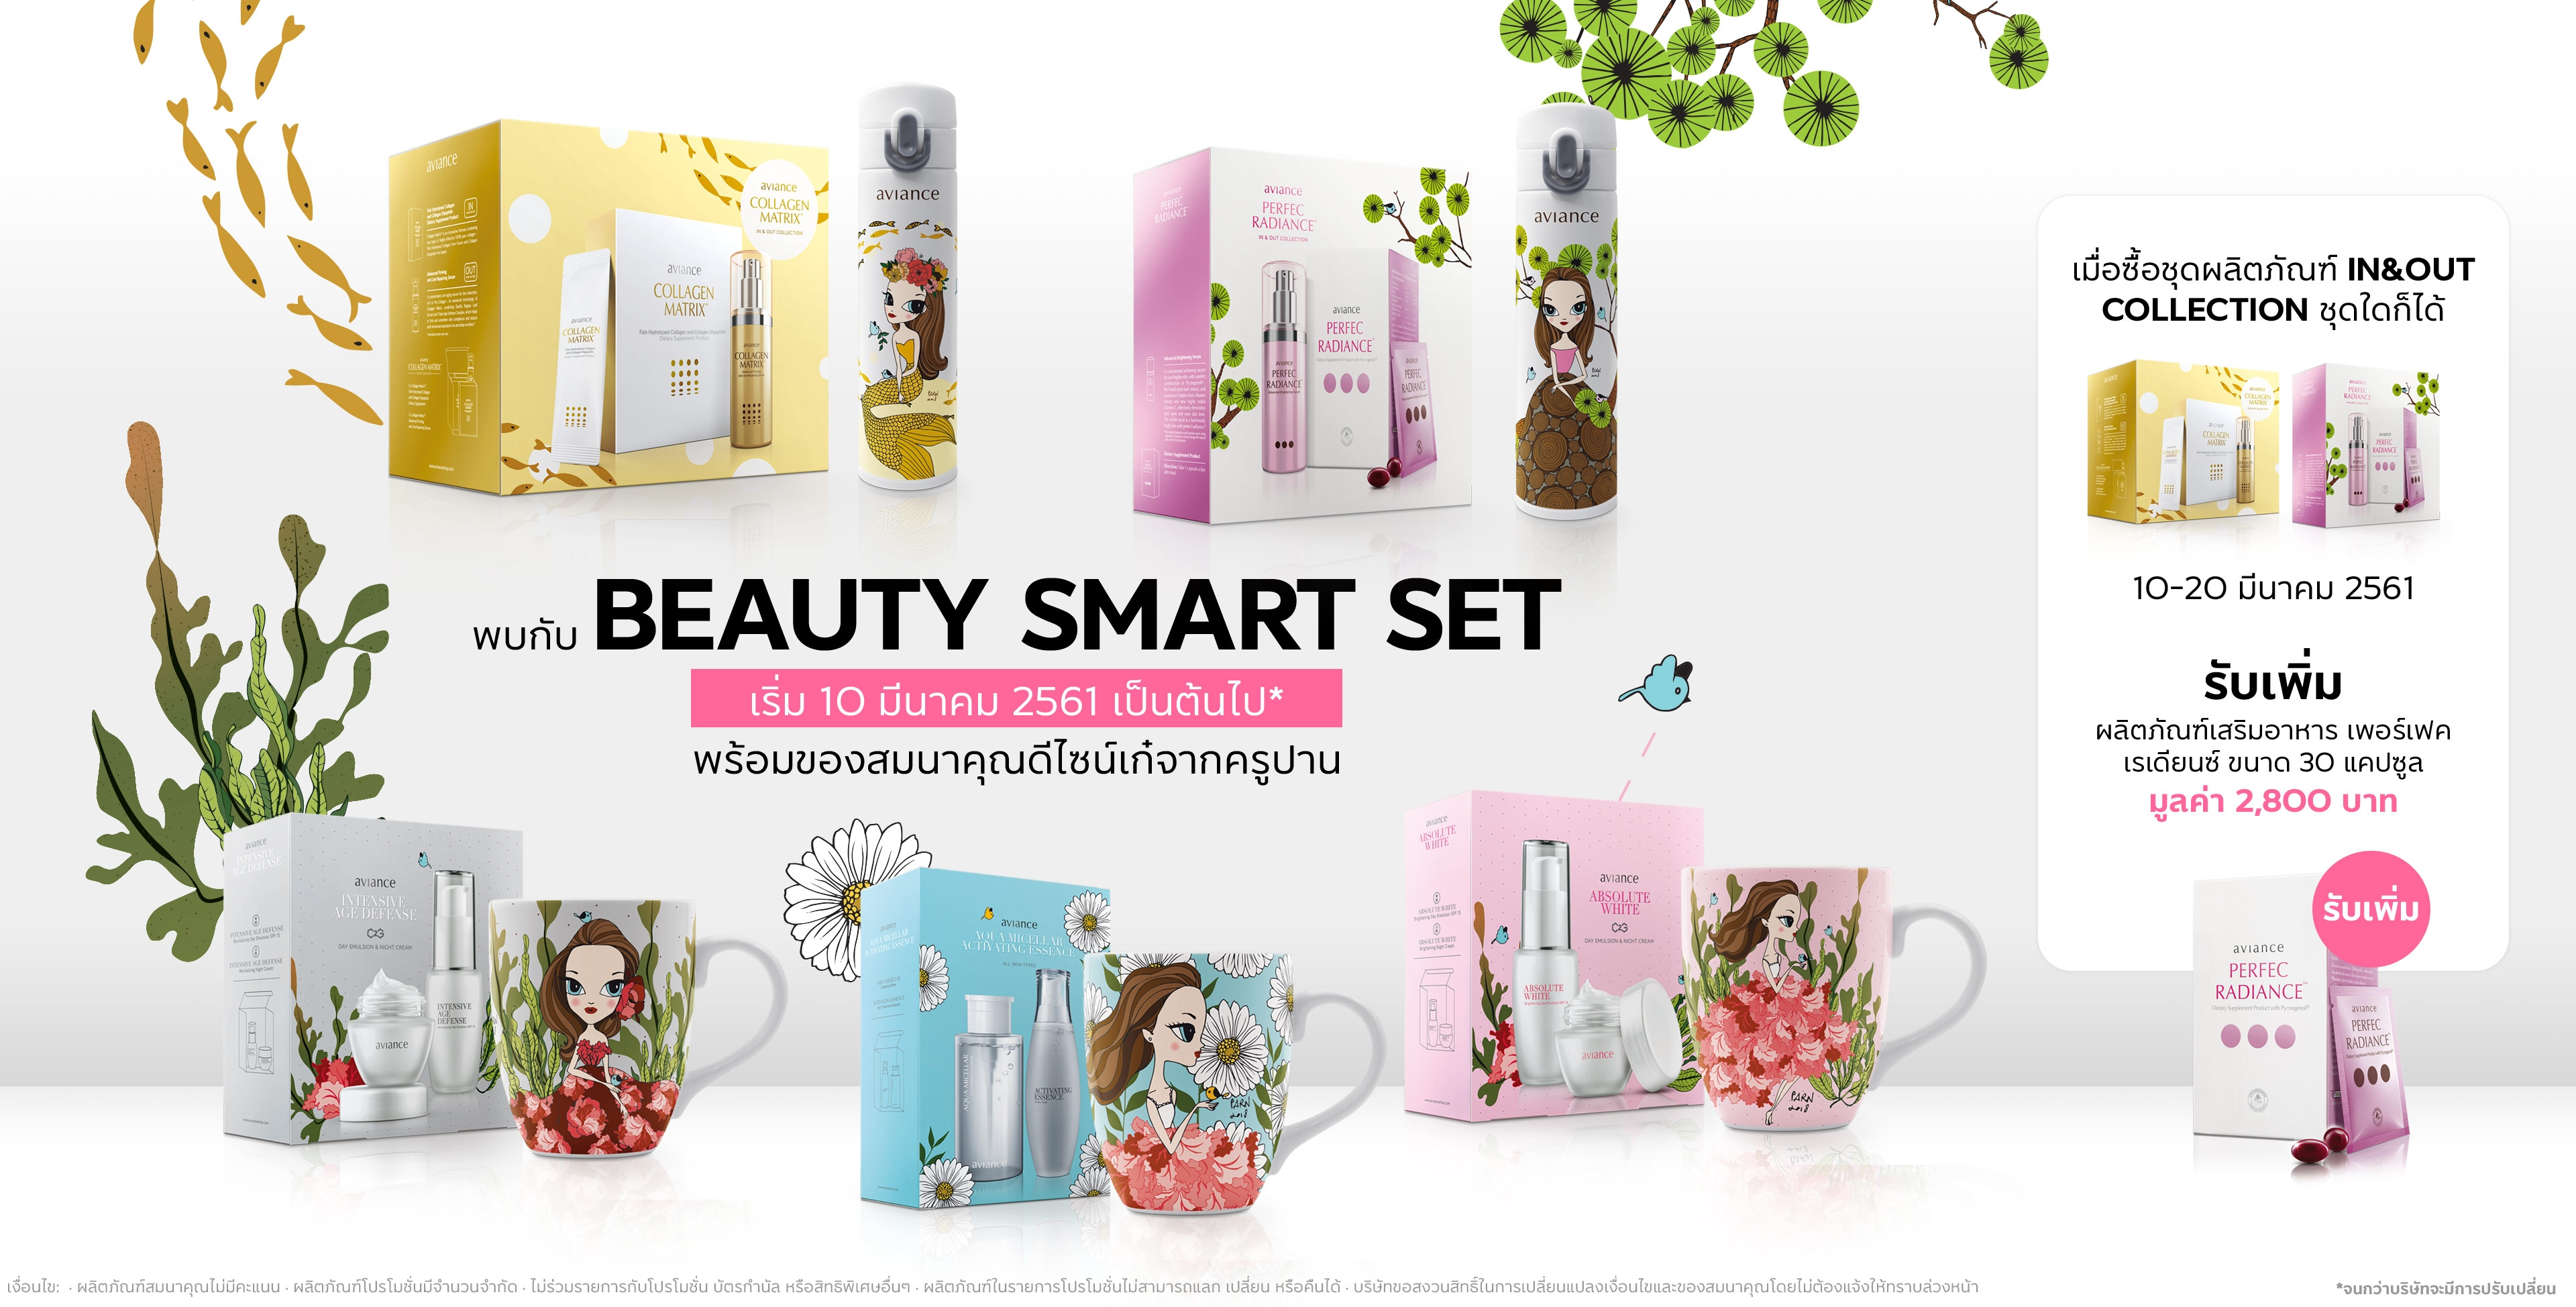 aviance beauty smart set